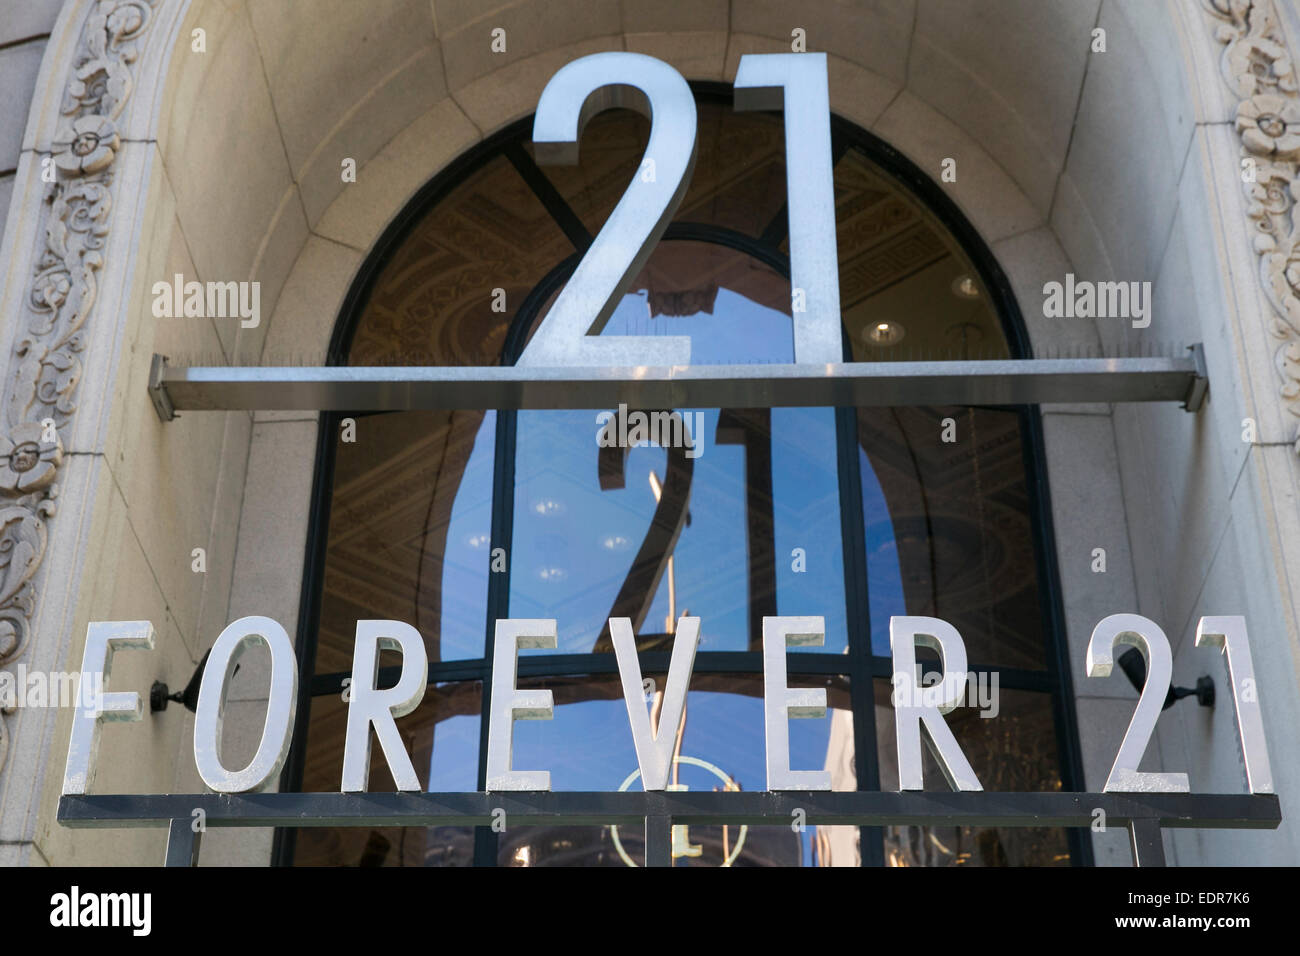 A Forever 21 clothing retail store in downtown San Francisco, California. - Stock Image